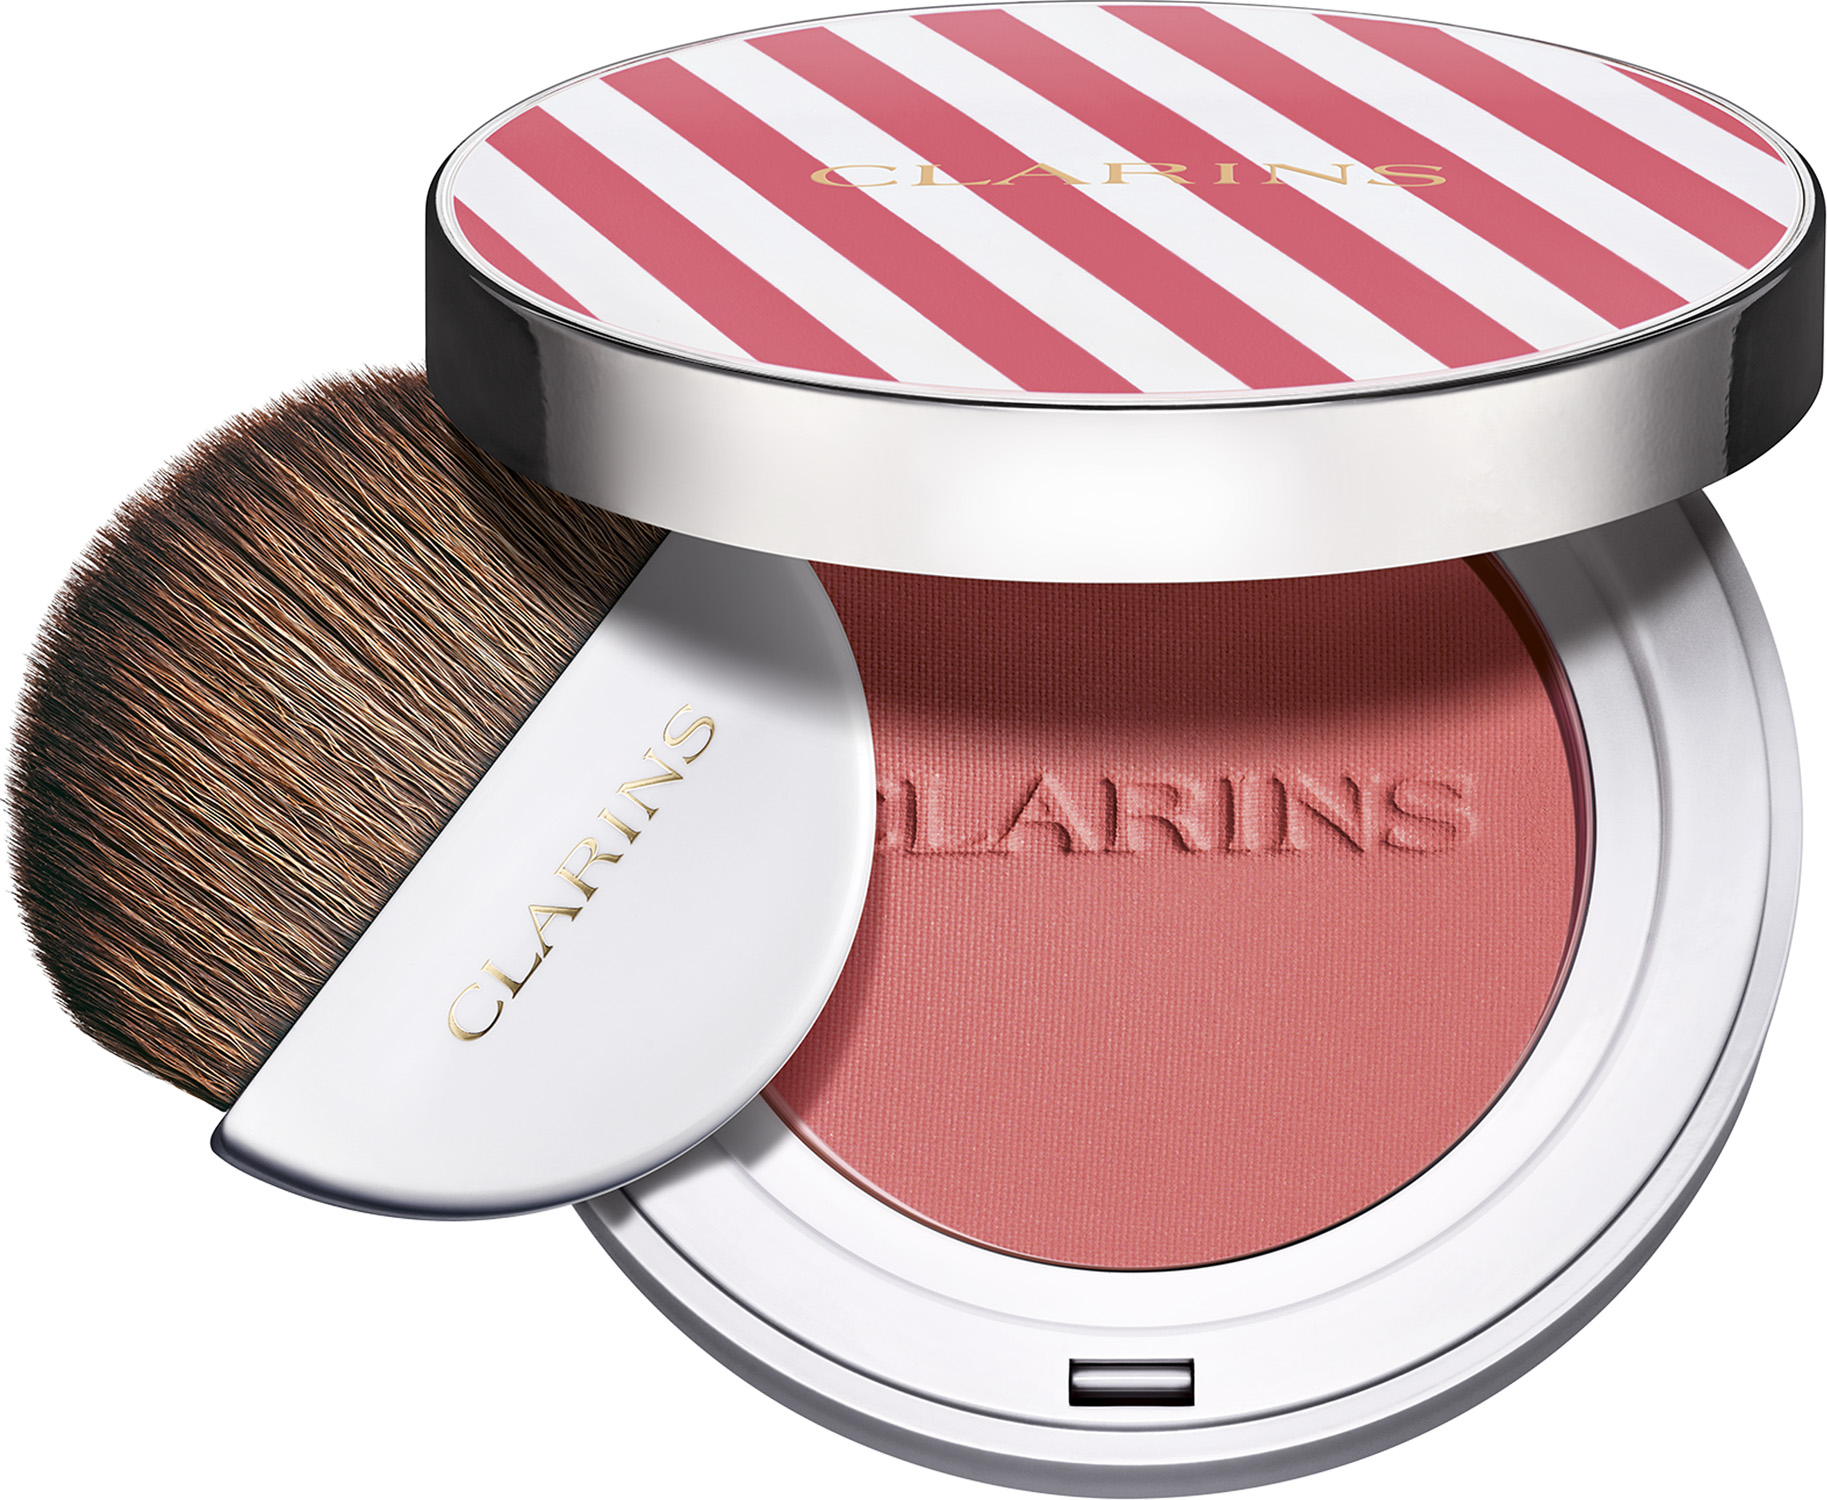 blush, Clarins, makeup, beauty. (Foto: Clarins)